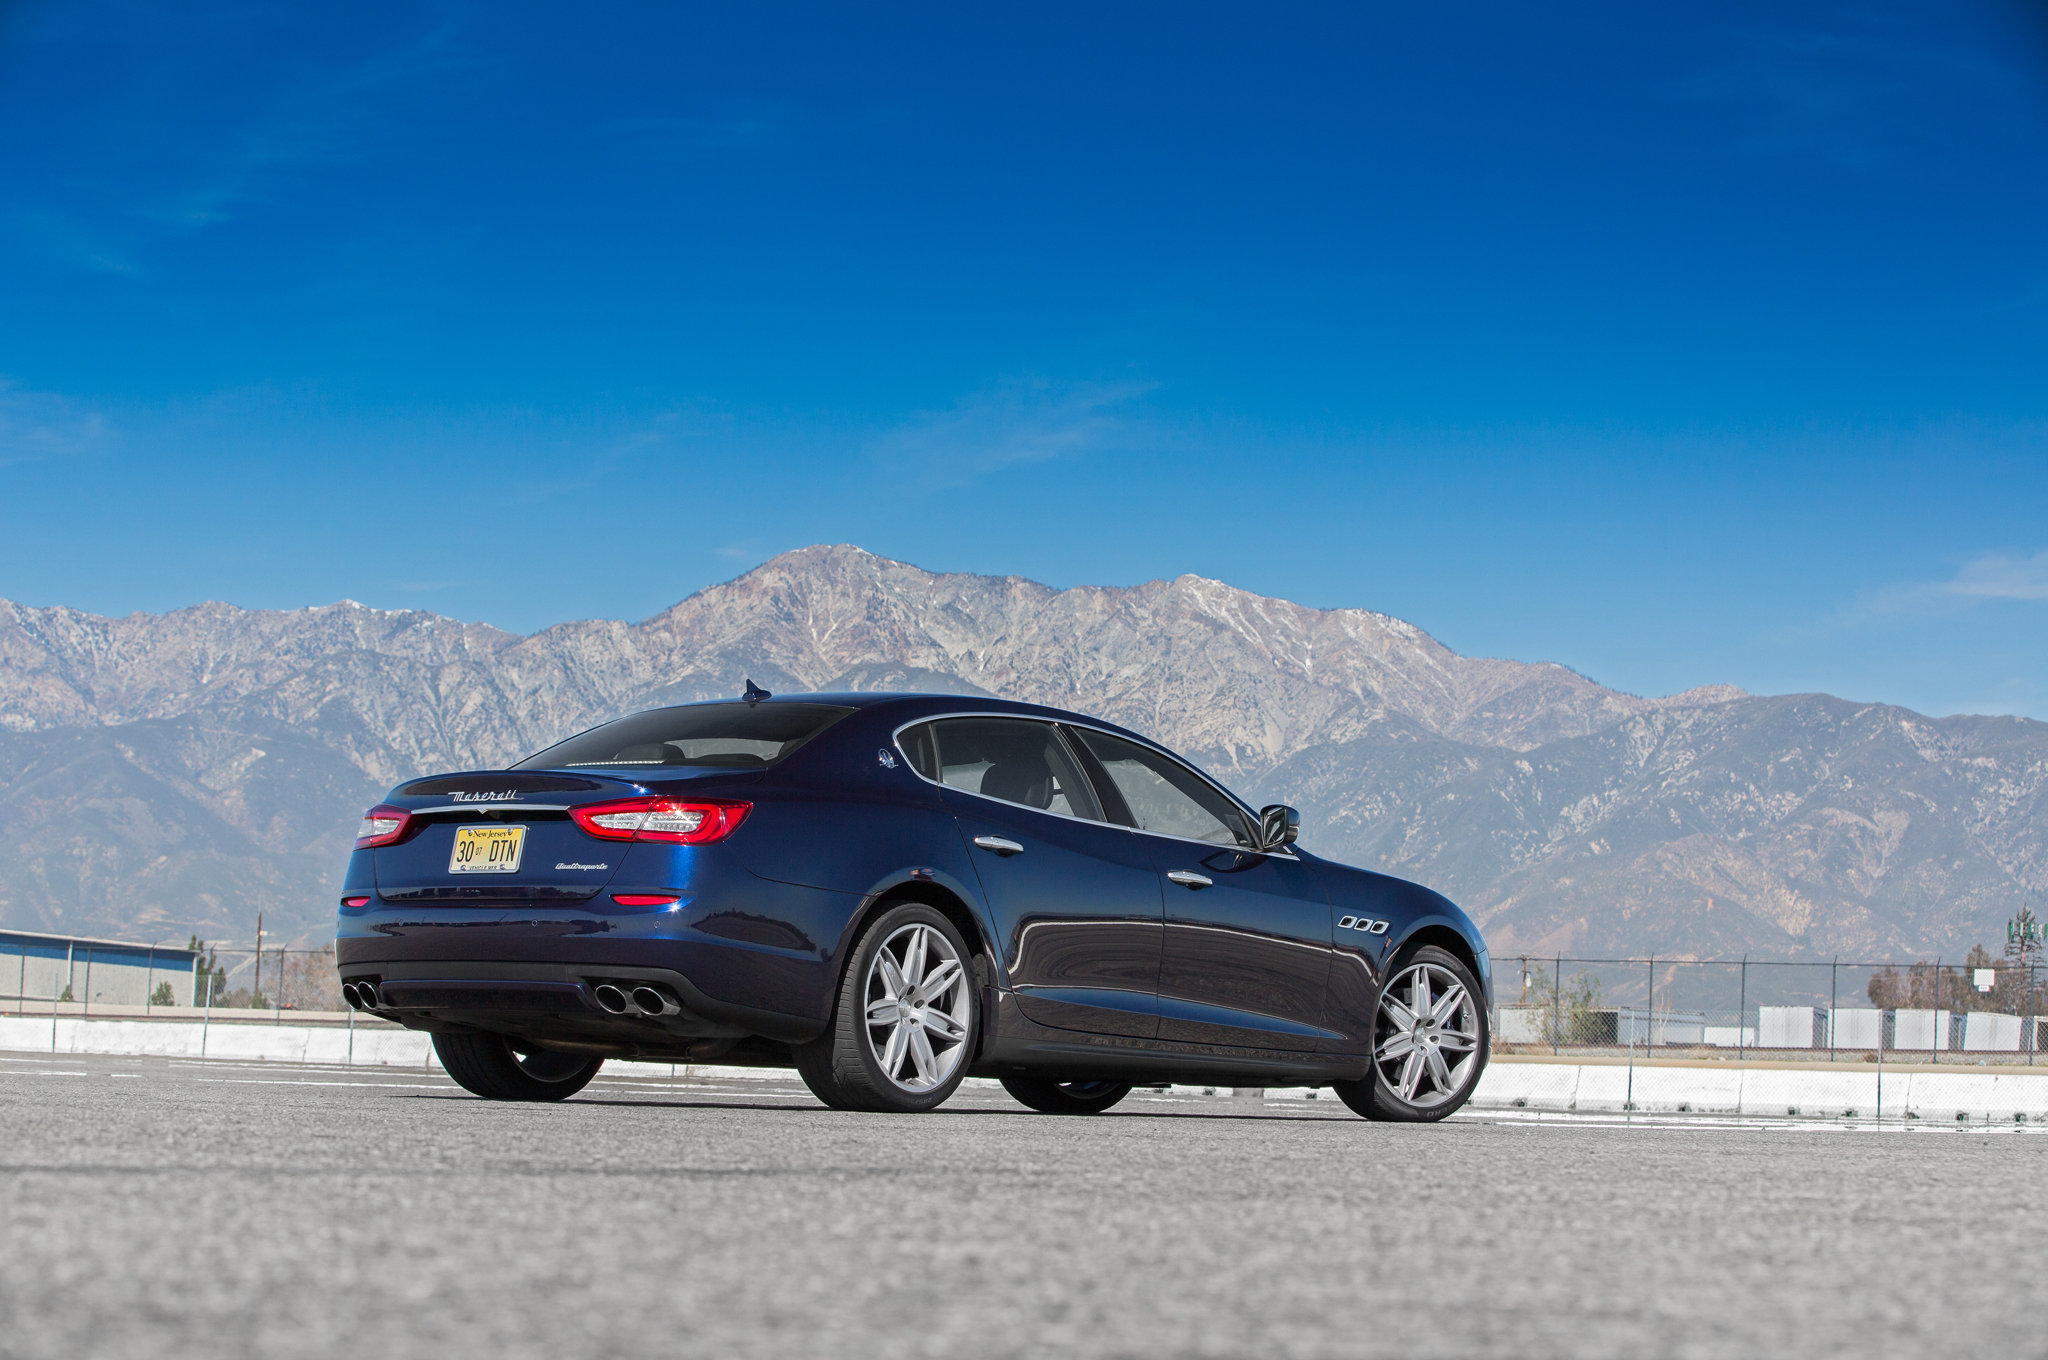 The Quattroporte's power-operated trunk features a helpful lock-and-close button, and we're also fans of the rear seat's USB charger.